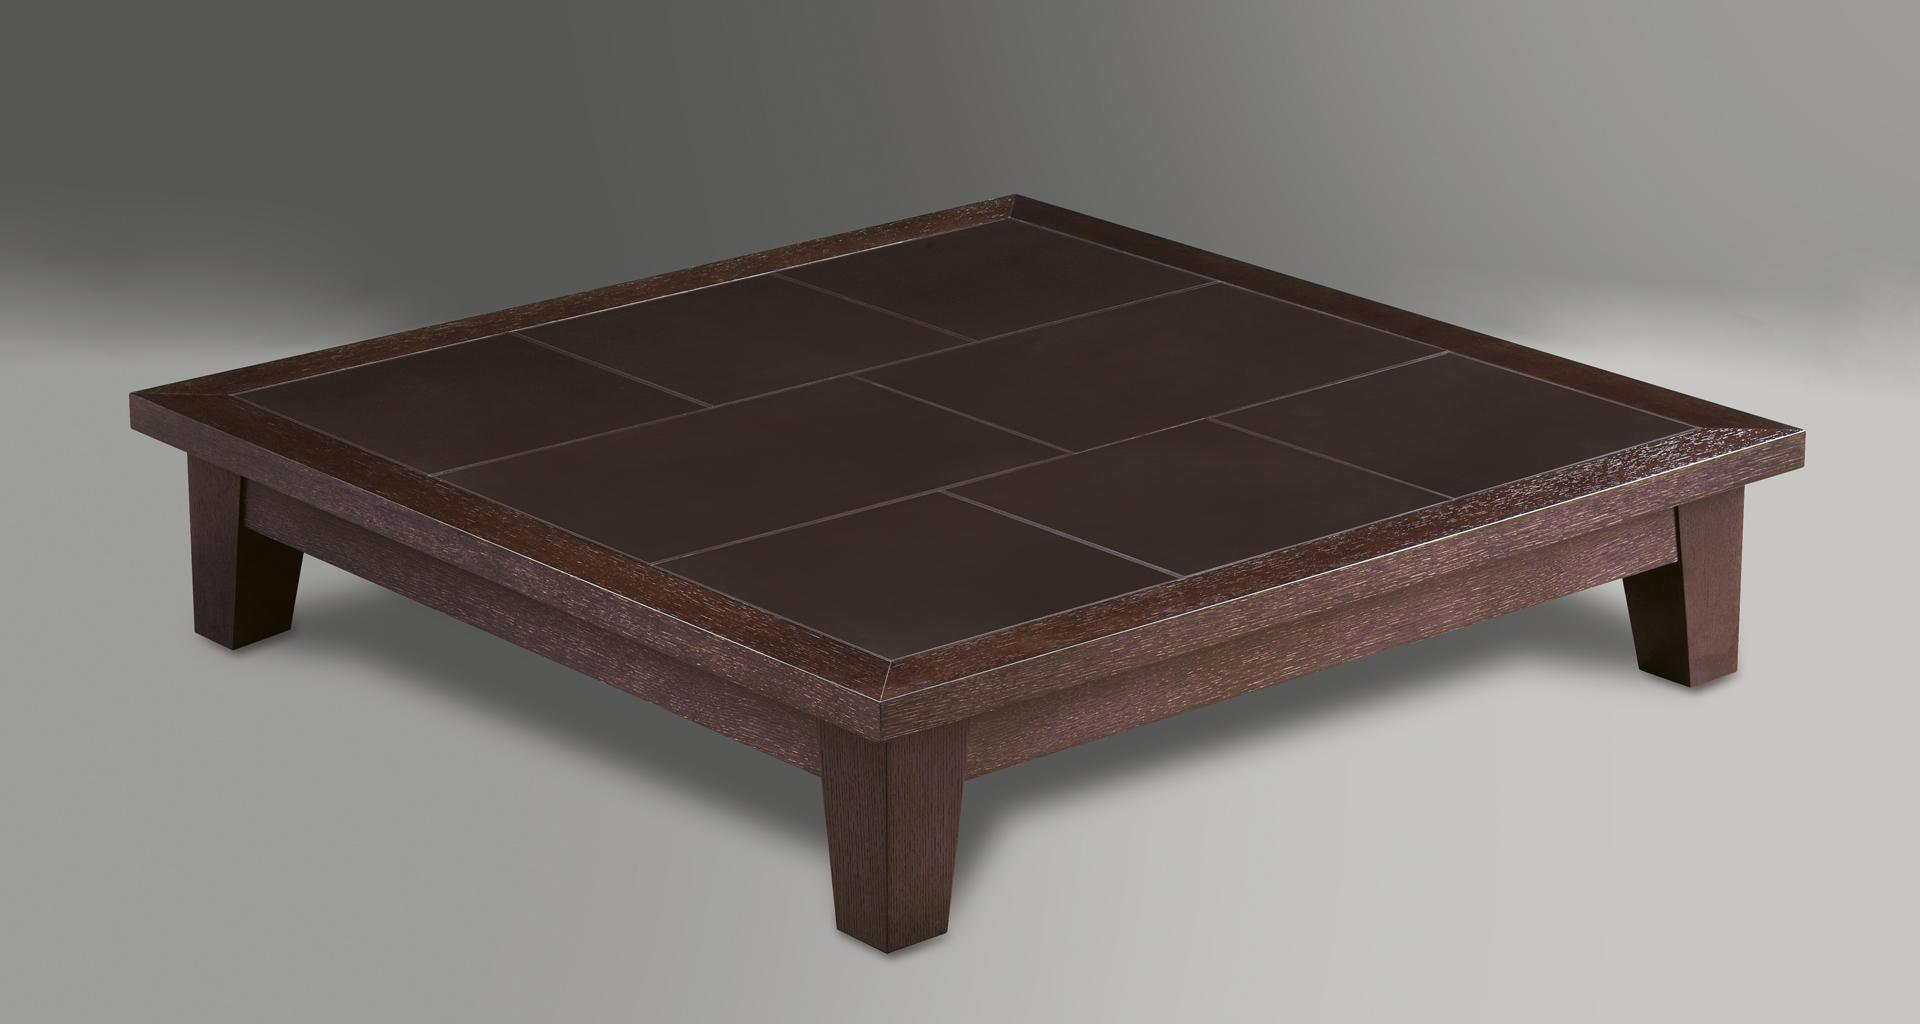 Eduardo is a square or rectangular wooden coffee table from Promemoria's catalogue | Promemoria